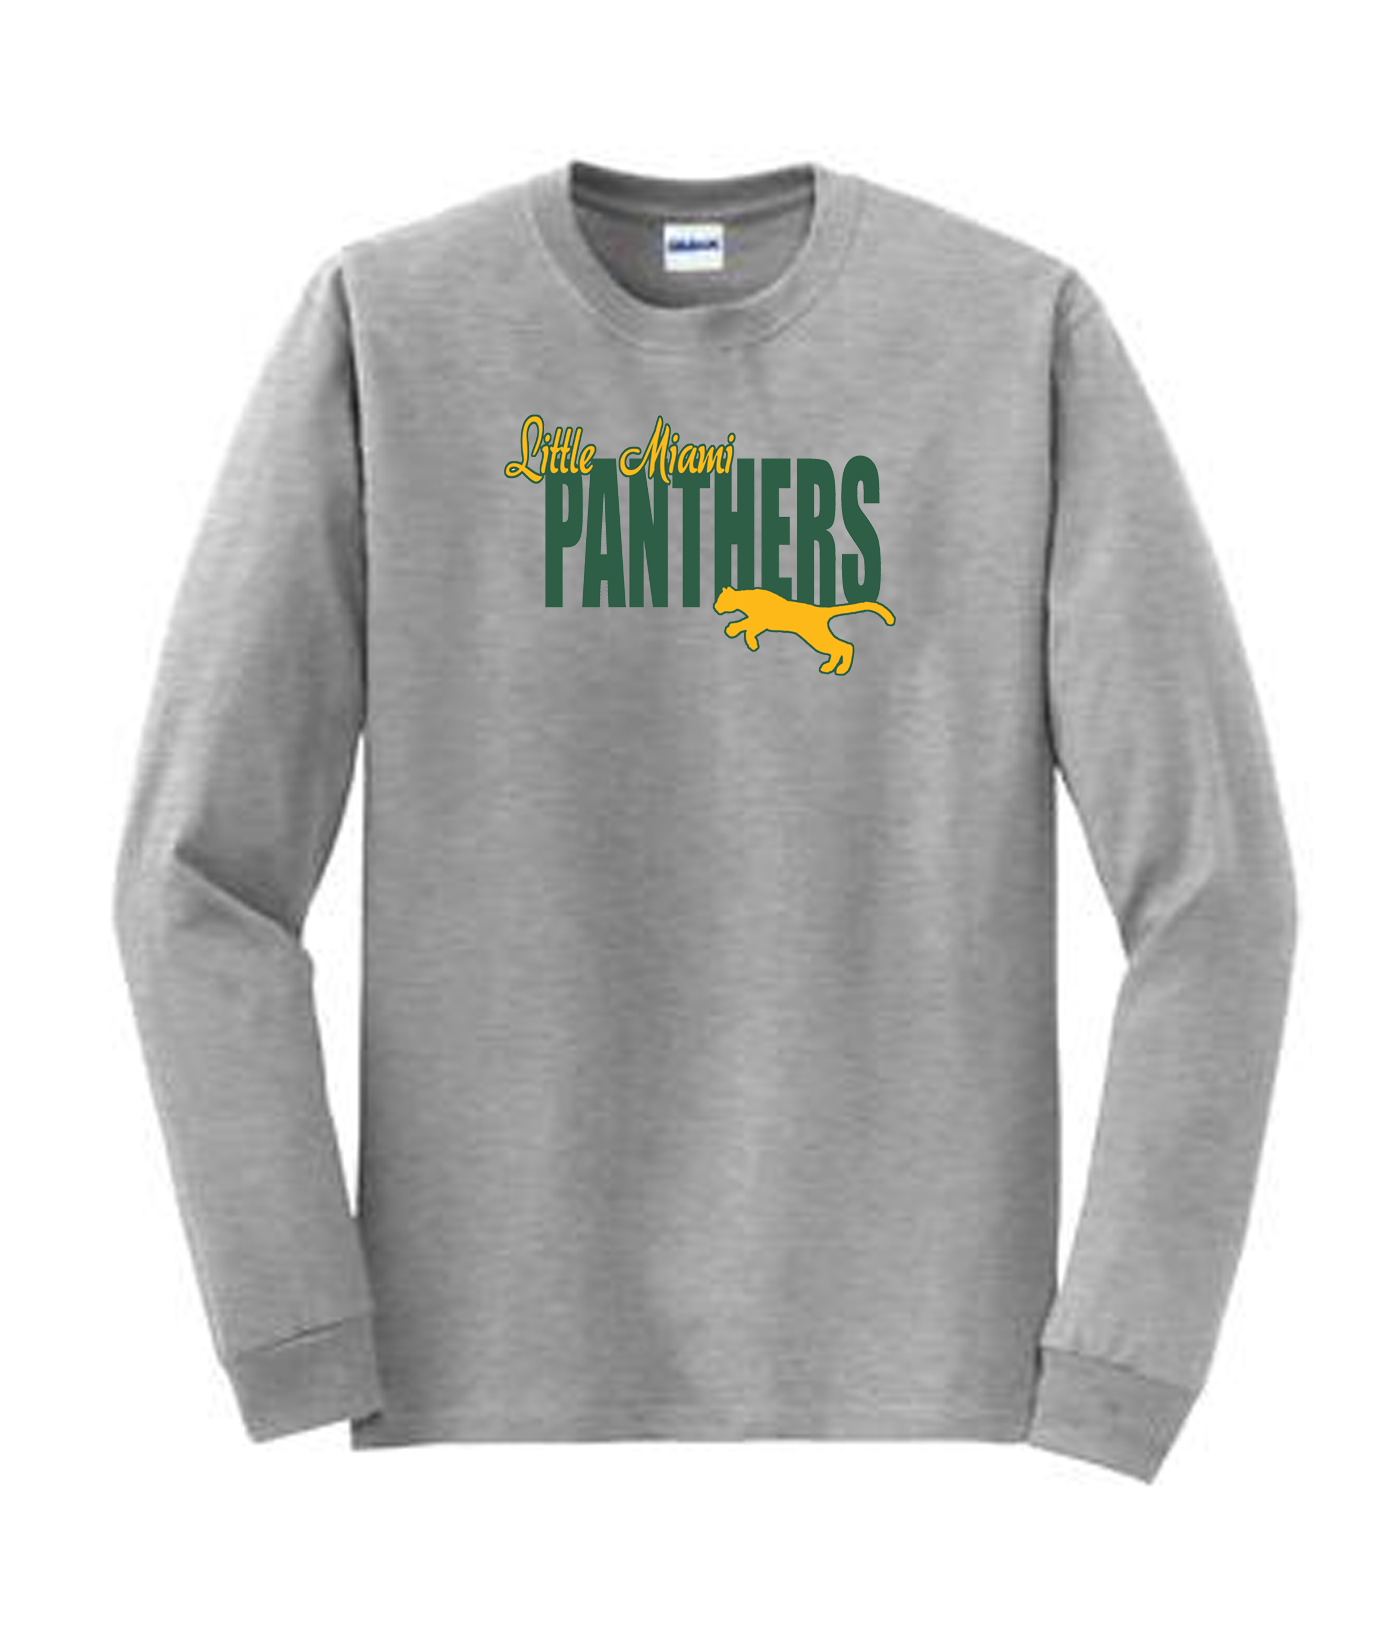 LM Panther Long Sleeve Grey Tee Green Yellow